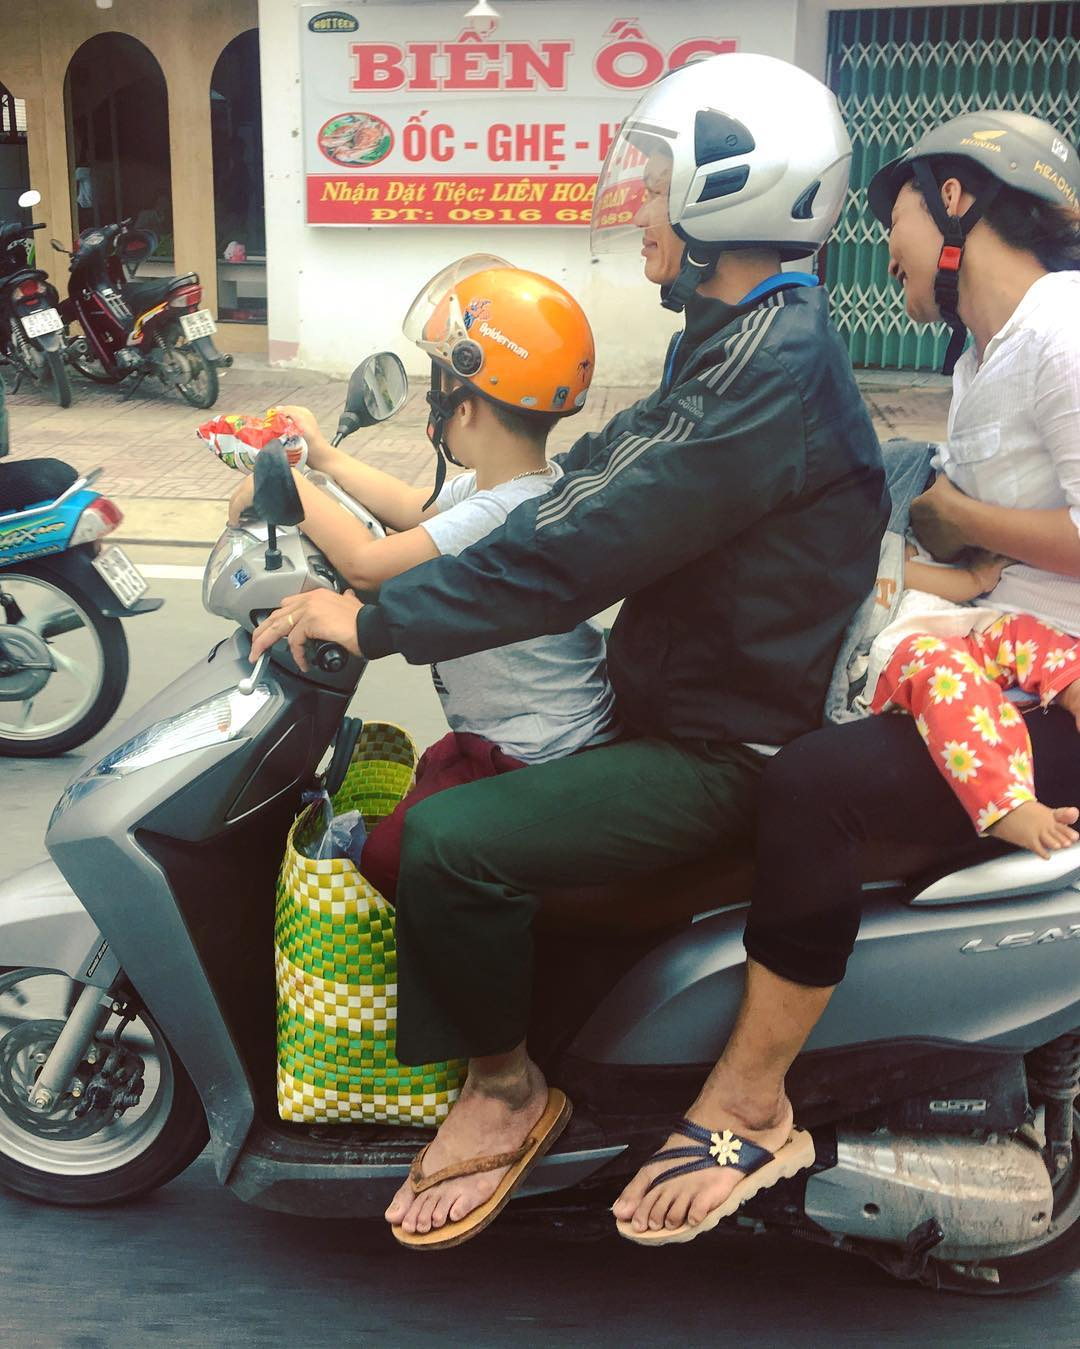 You see this all the time here in Ho Chi Minh City, so cool. You would be sent to jail in Europe if you did this for sure! Great country Vietnam, super impressed with it so far. Seen a Few nice bikes but didn't manage to get any photos in the crazy traffic! #moto #travel